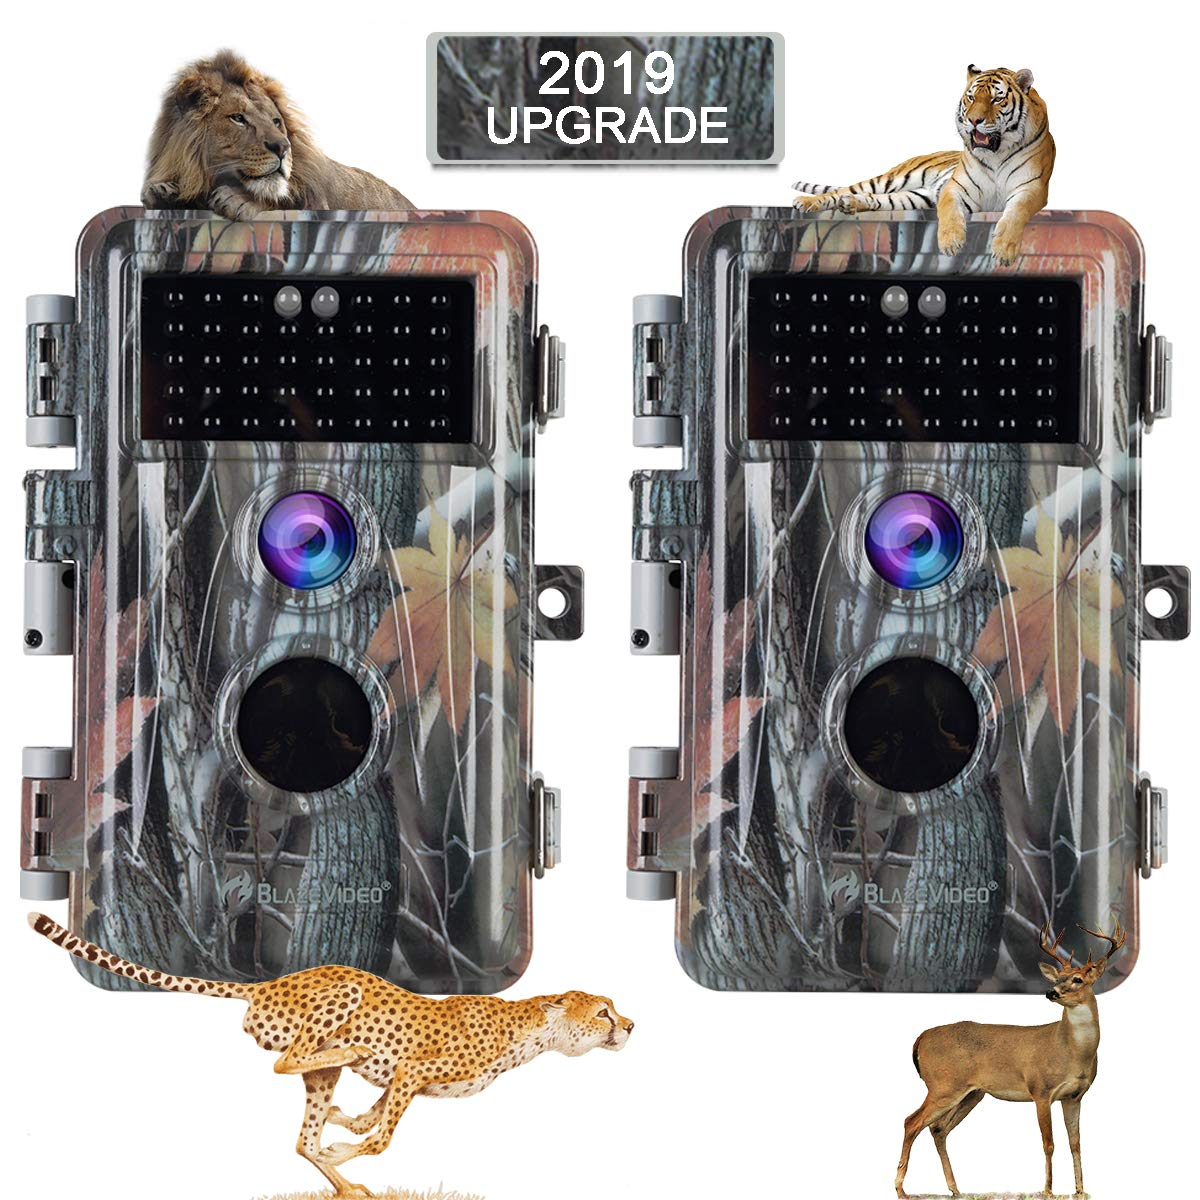 [2019 Upgraded] 2-Pack Night Vision Game Trail Cameras 16MP 1080P No Glow Hunters Deer Hunting Cams IP66 Waterproof & Password Protected Motion Activated Photo & Video Model, Time Stamp & Time Lapse by BlazeVideo